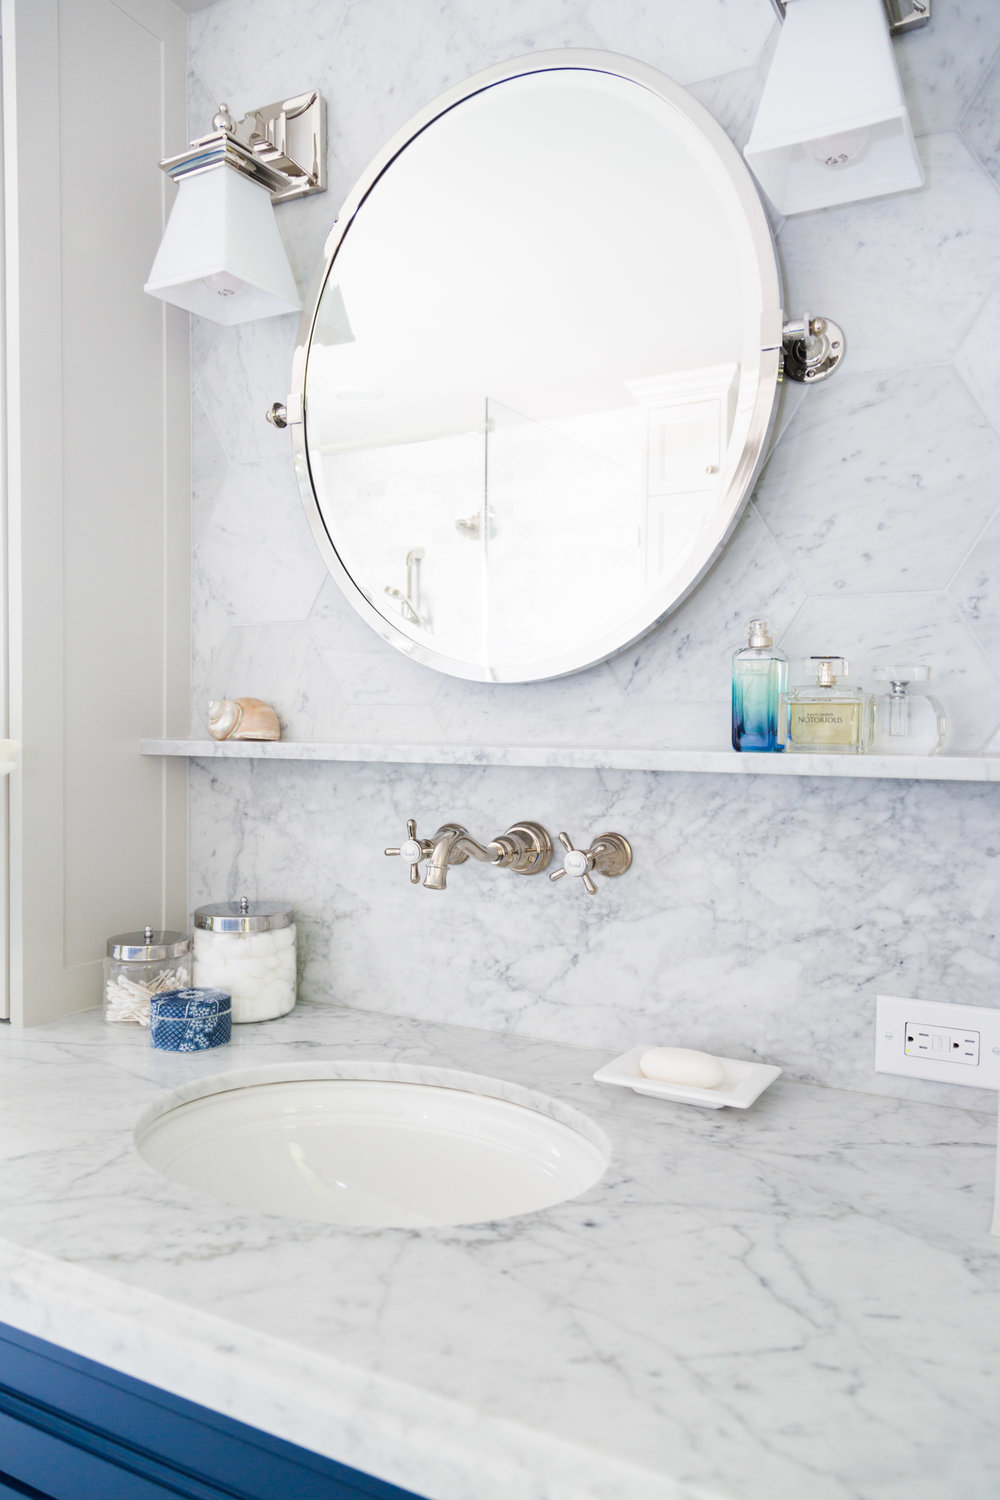 Luxury Marble ledge and wall mount faucet with pivot mirror at master bathroom vanity Carla Aston